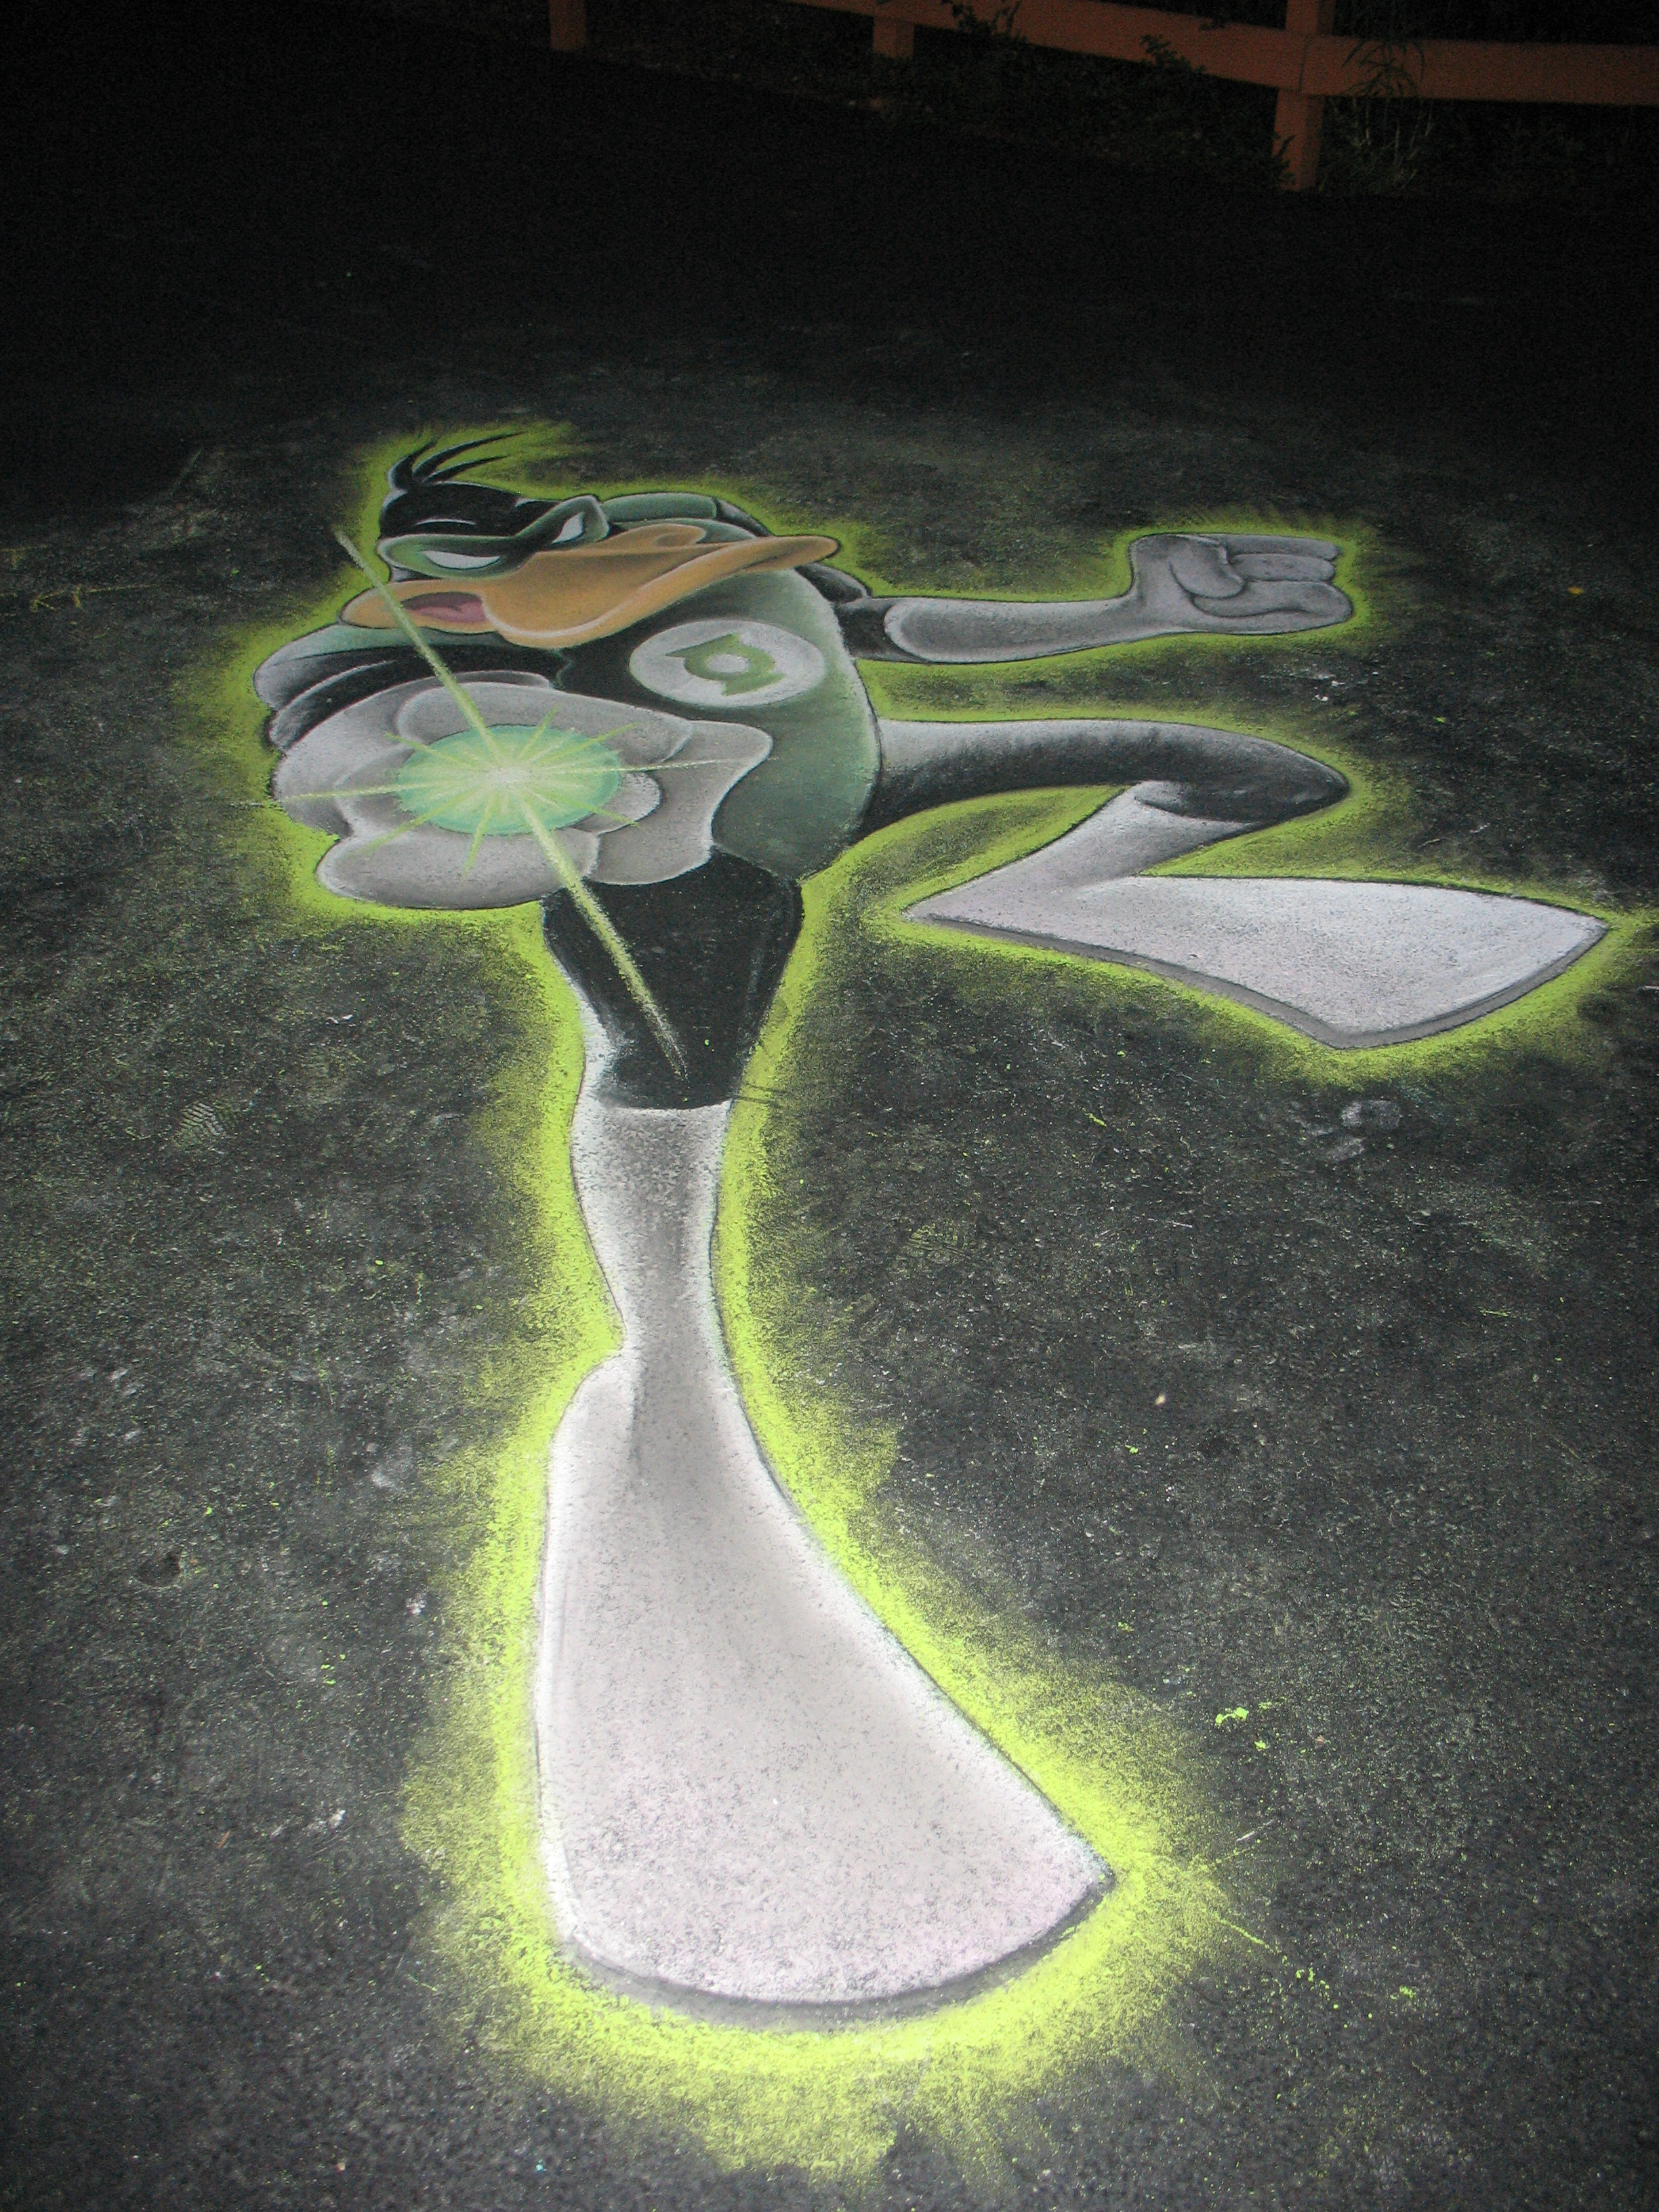 Daffy Duck as Green Lantern